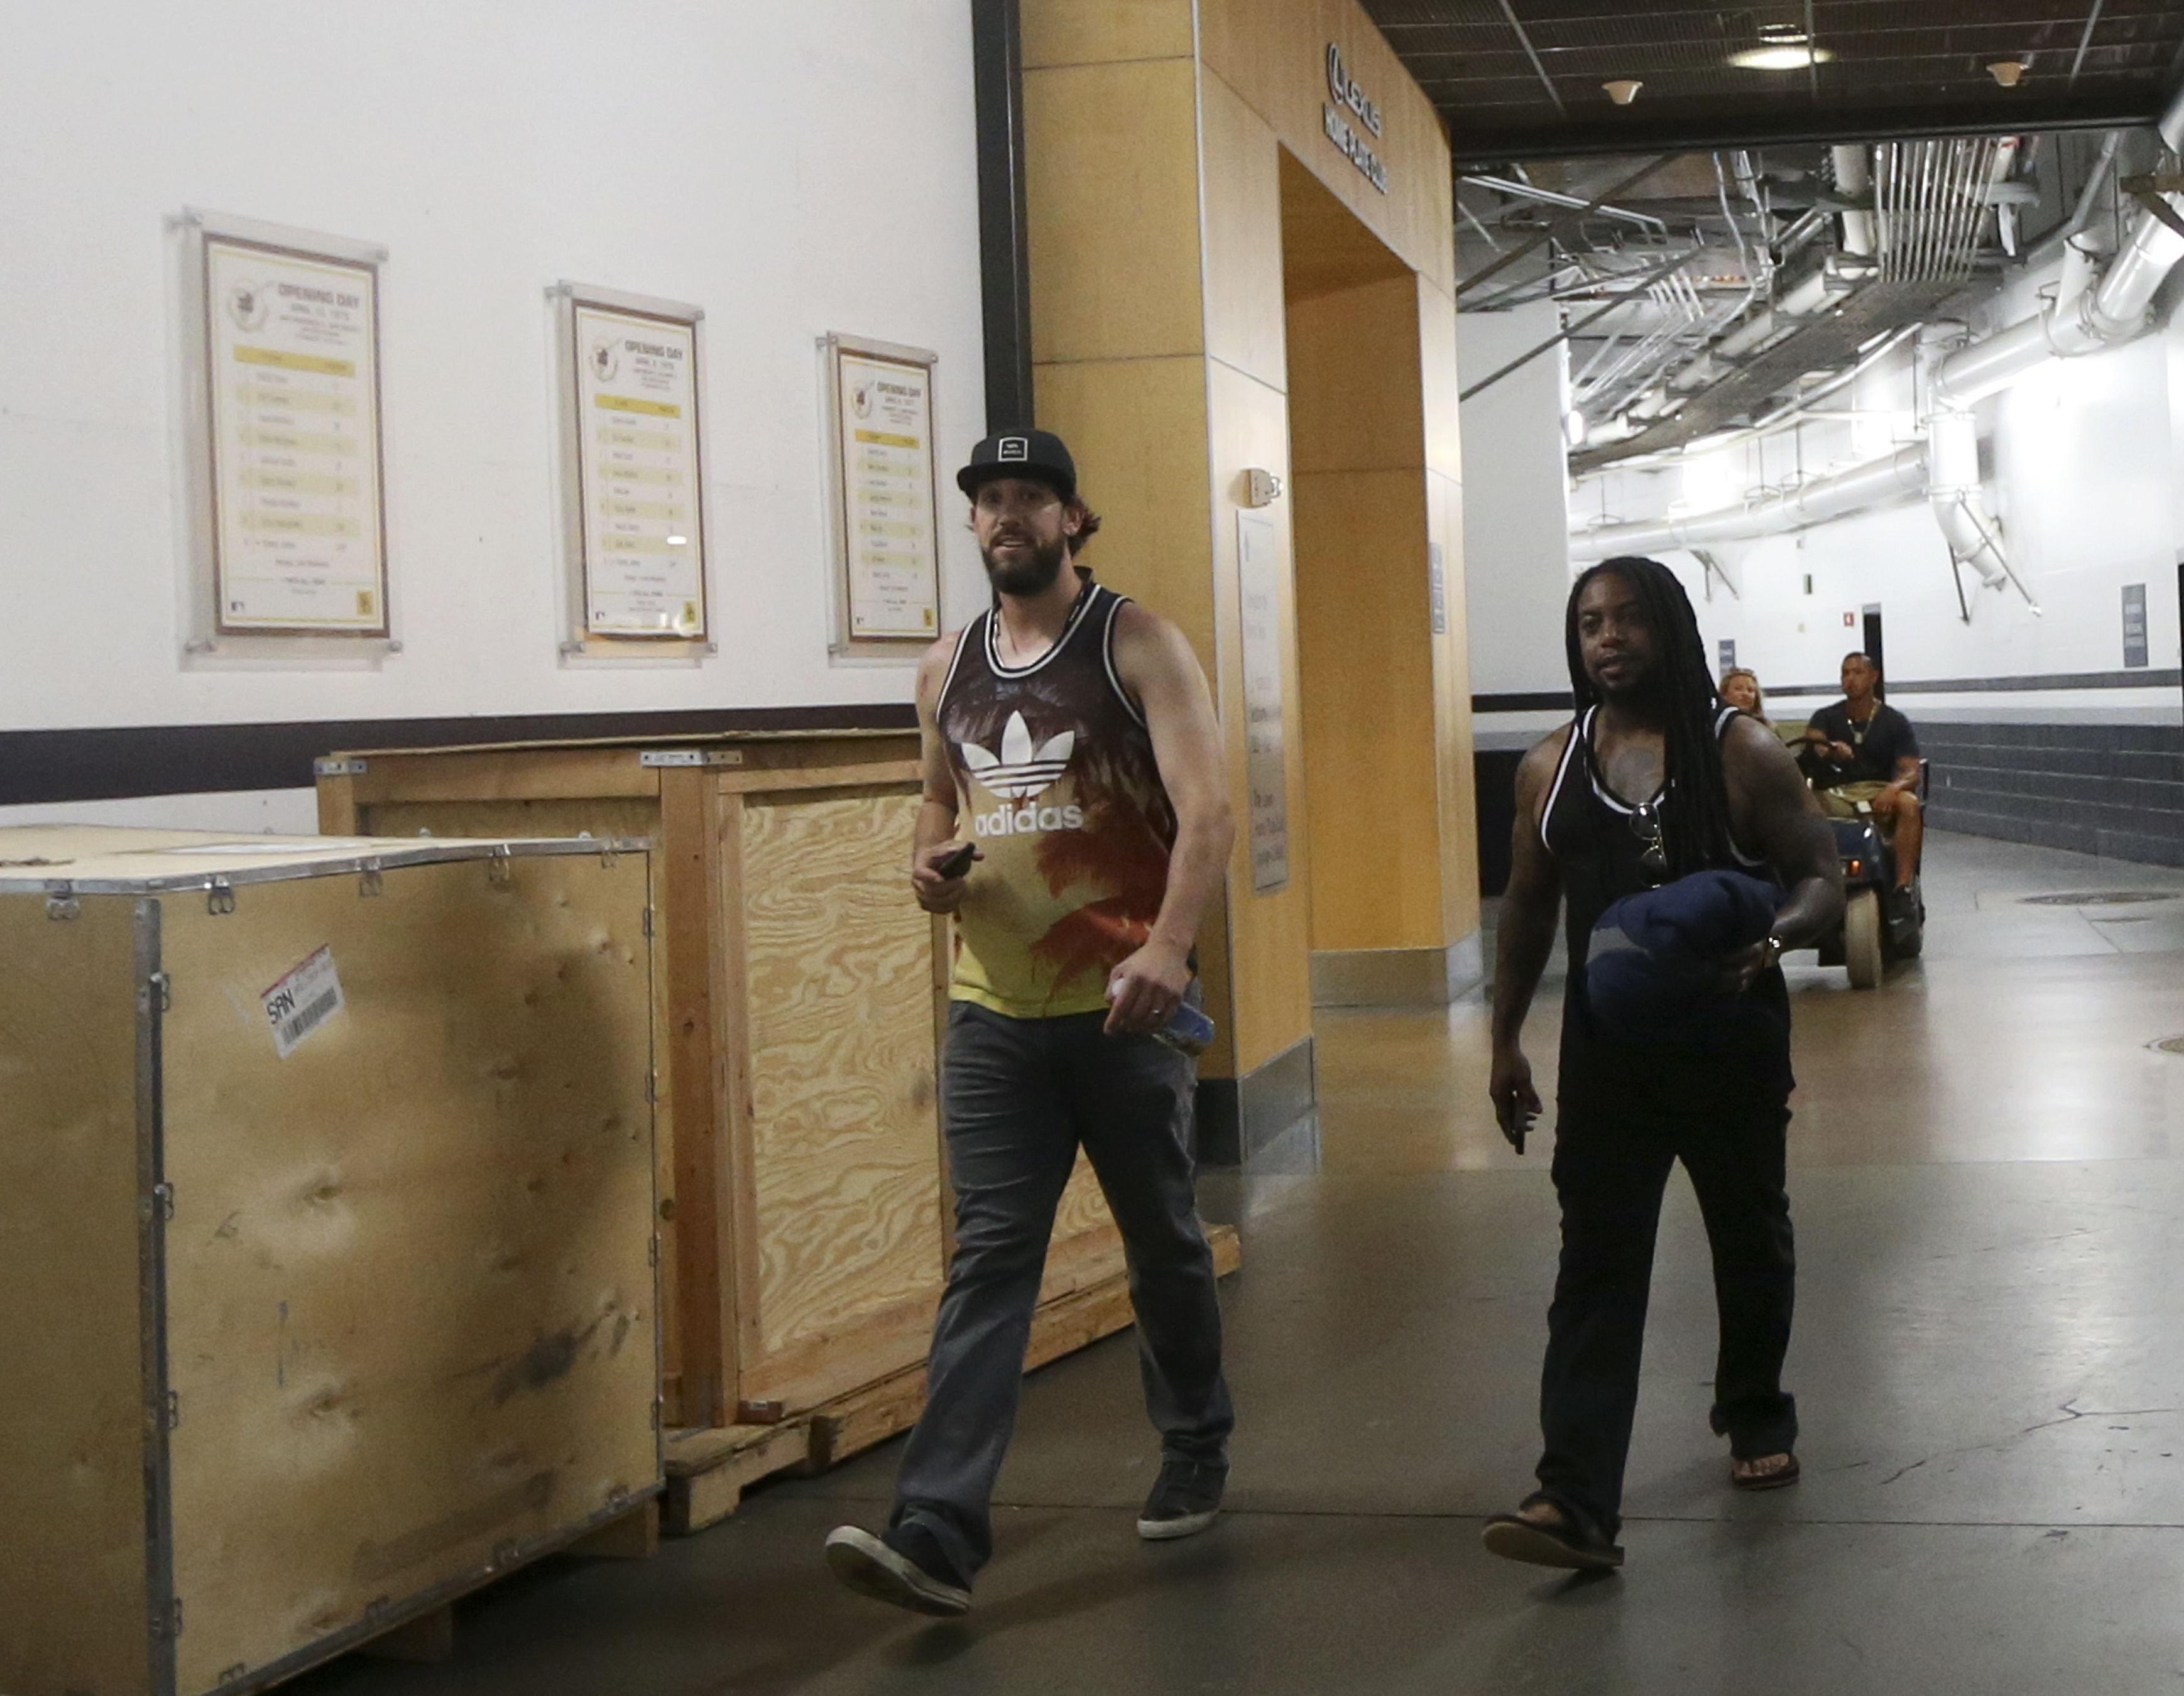 Pitcher James Shields, left, is accompanied by an unknown associate as he leaves Petco Park after being traded by the San Diego Padres to the Chicago White Sox, Saturday June 4, 2016, in San Diego. (AP Photo/Lenny Ignelzi)